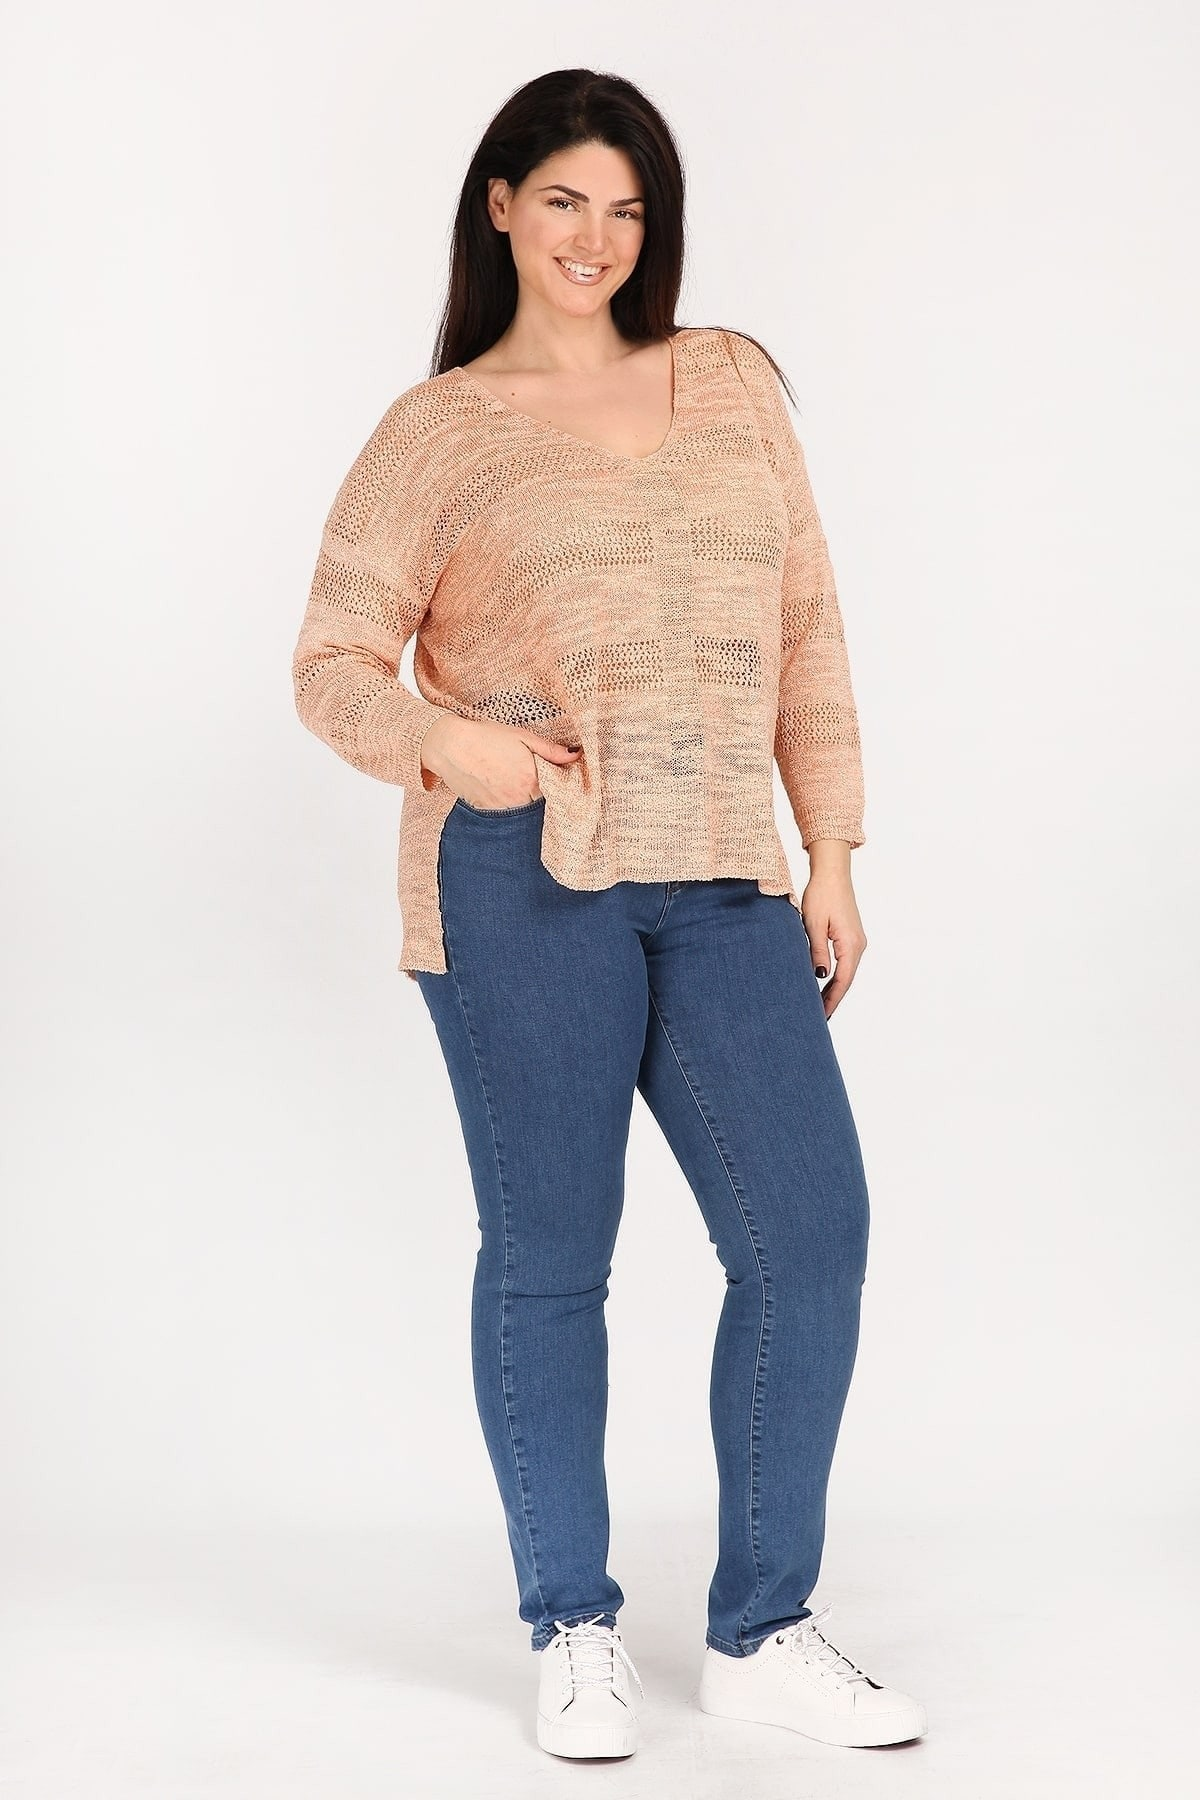 Striped knit lurex blouse with openwork details